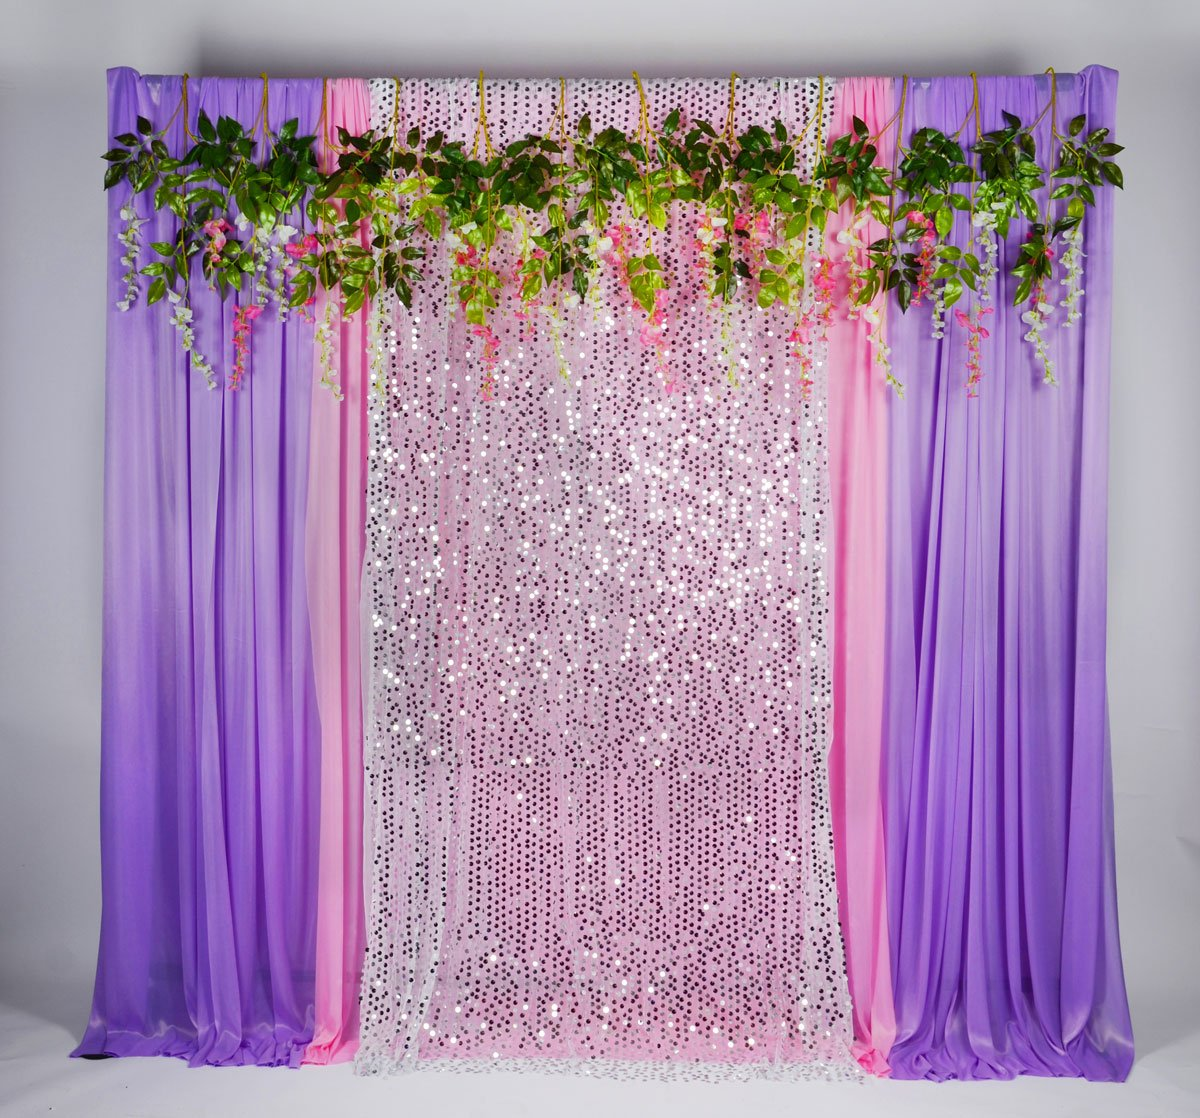 Pink Sequin Curtains Kate 5x16ft Purple Pink With Silver Glitter Ice Silk Background